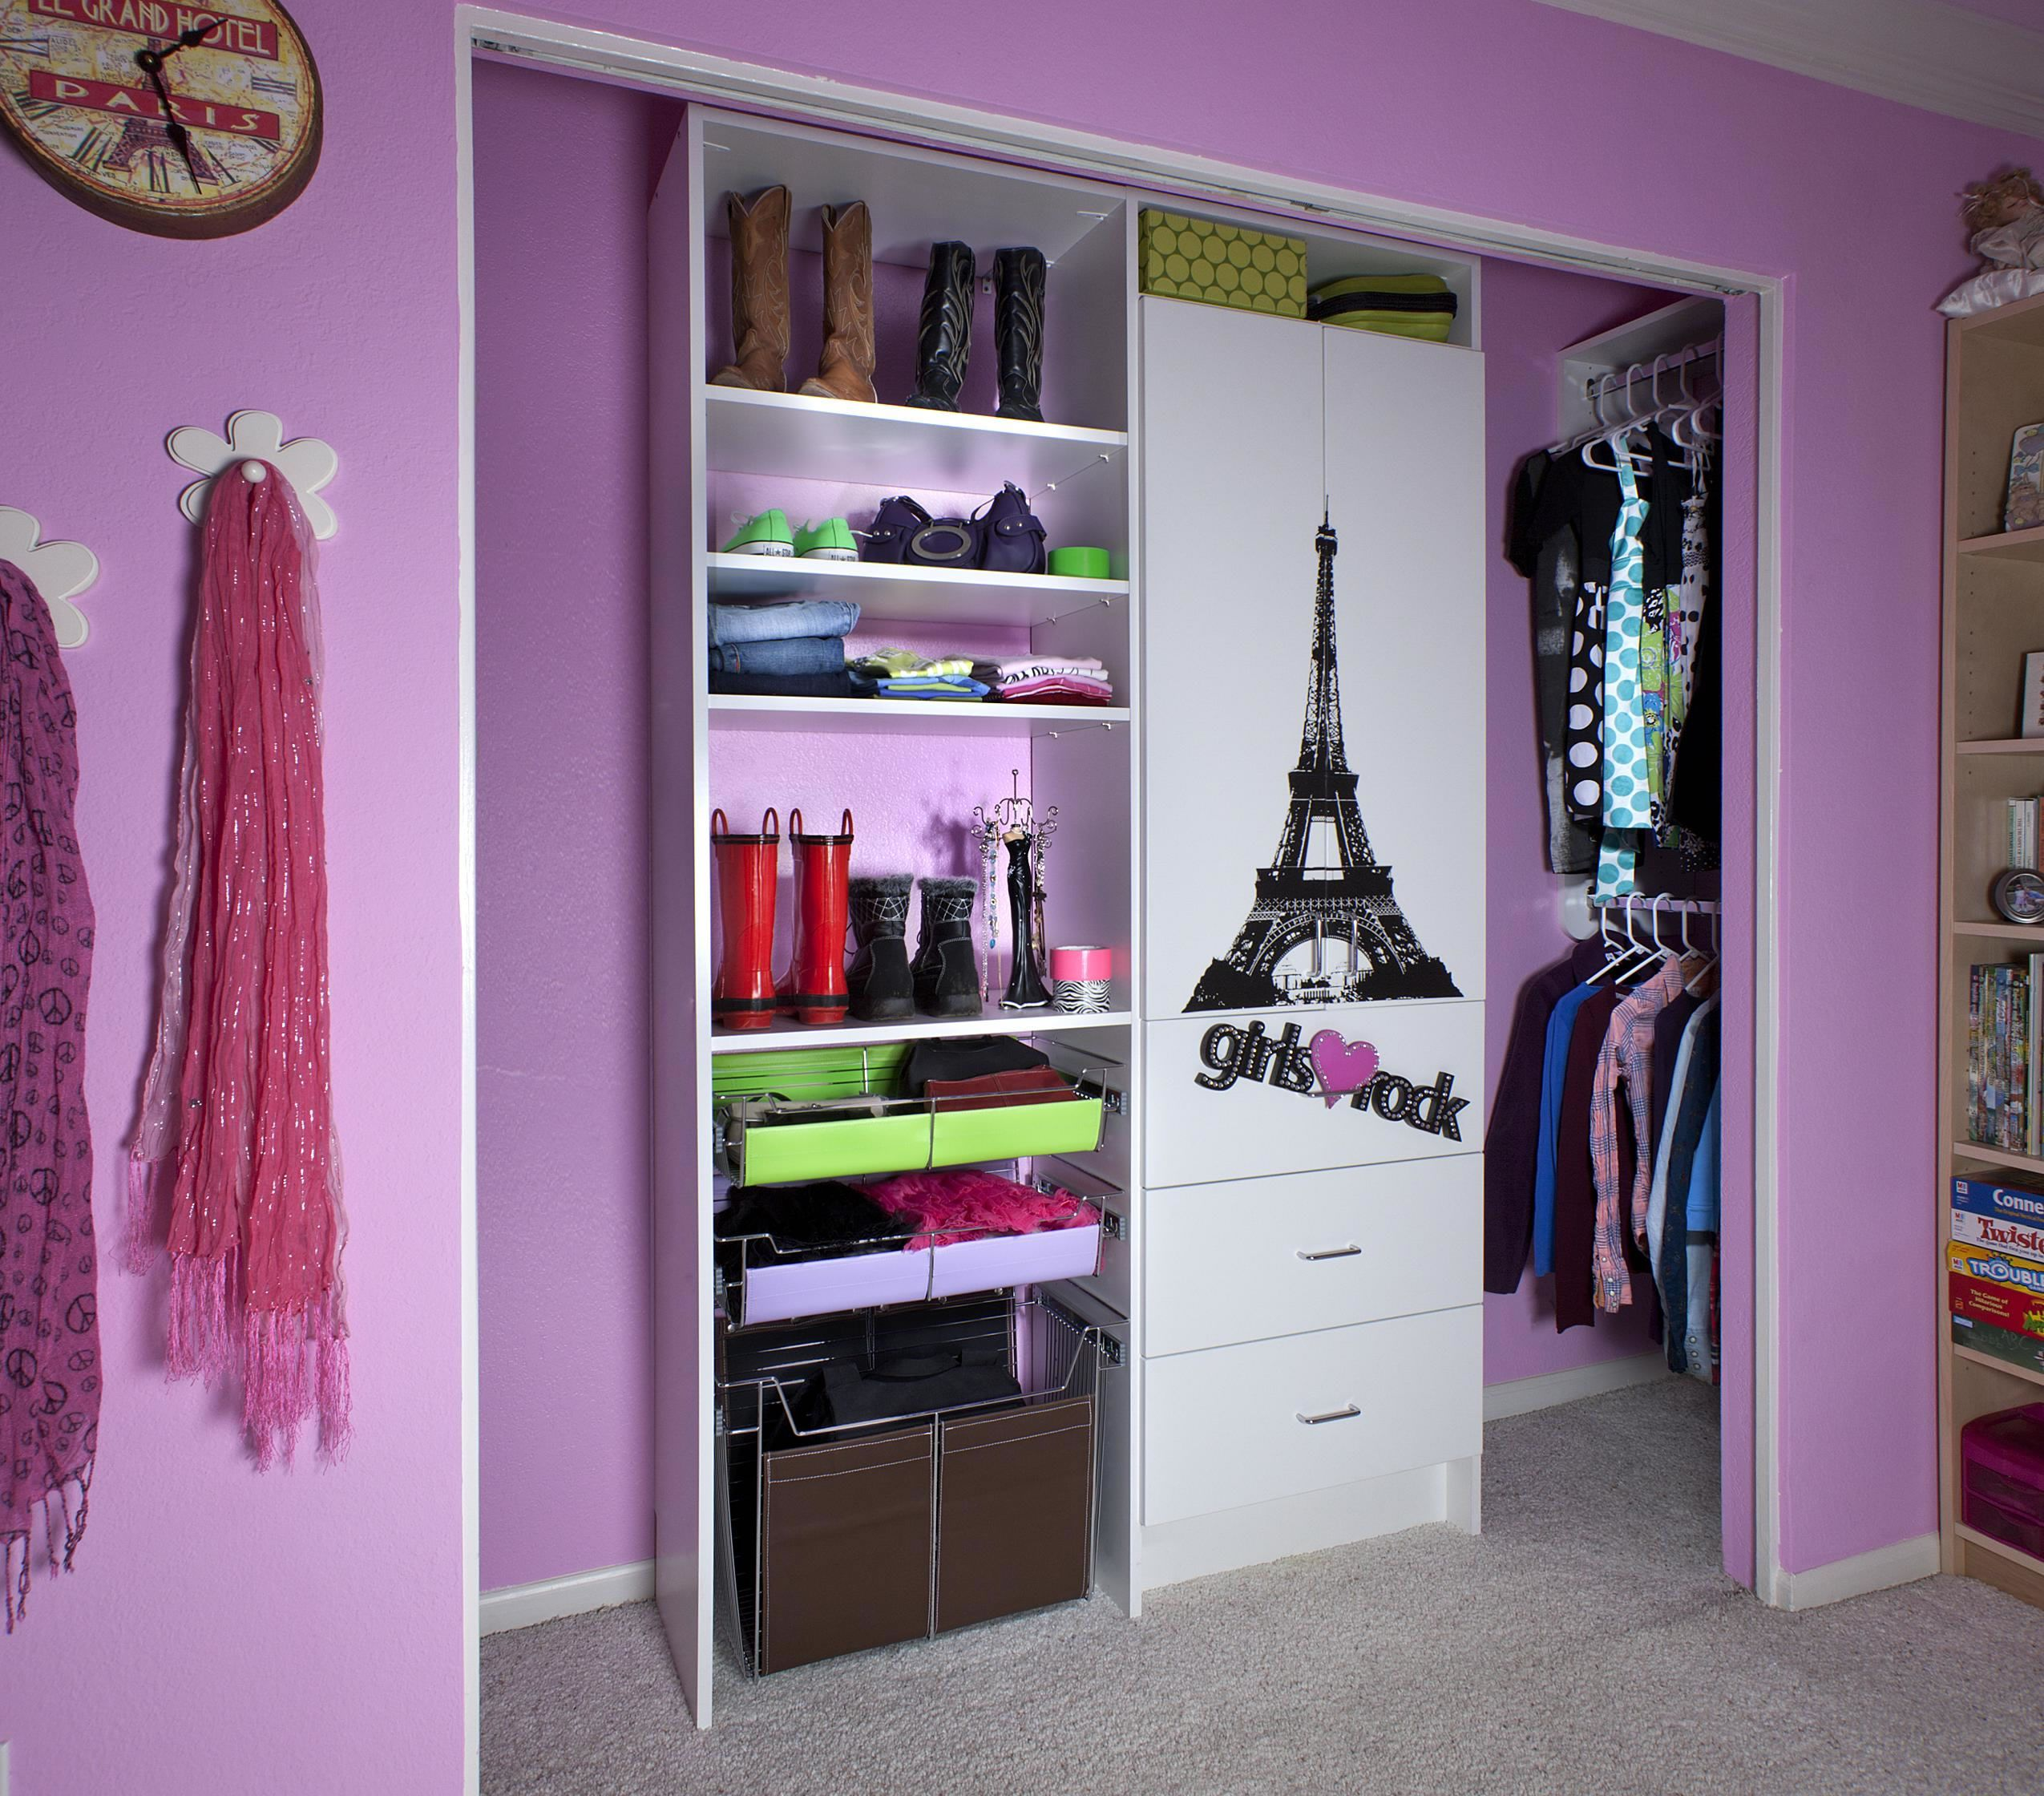 Decorate White Wardrobe Cabinet with Eiffel Tower Decal in Small Closet Ideas for Girl Bedroom